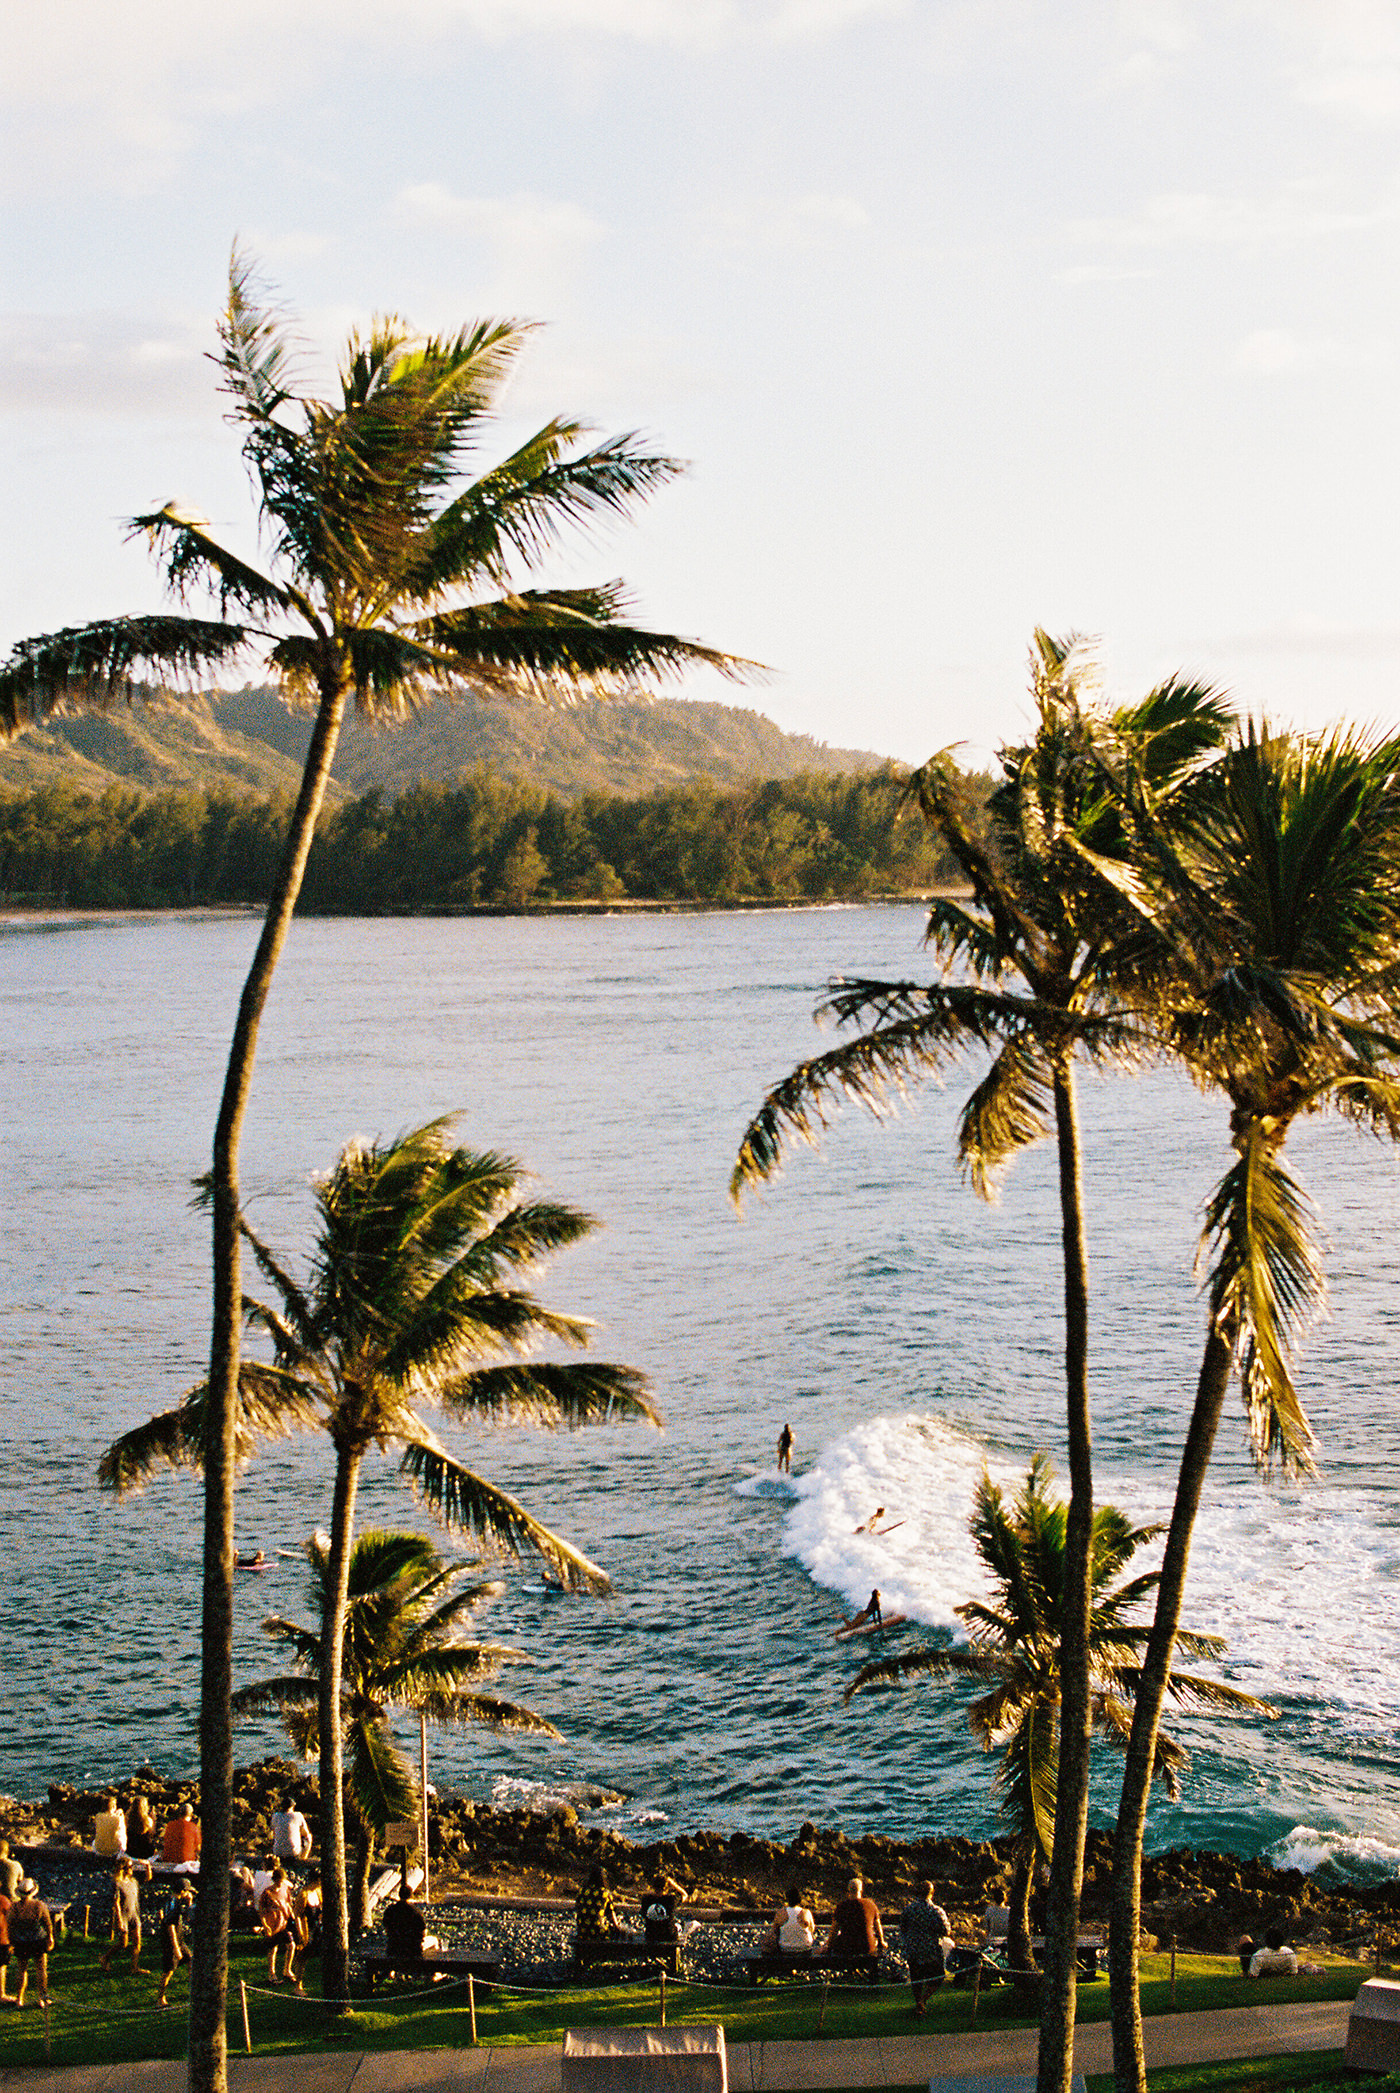 View from our balcony window. Every night at sunset this was our view. Surfers riding long peeling soft rights. So fun!